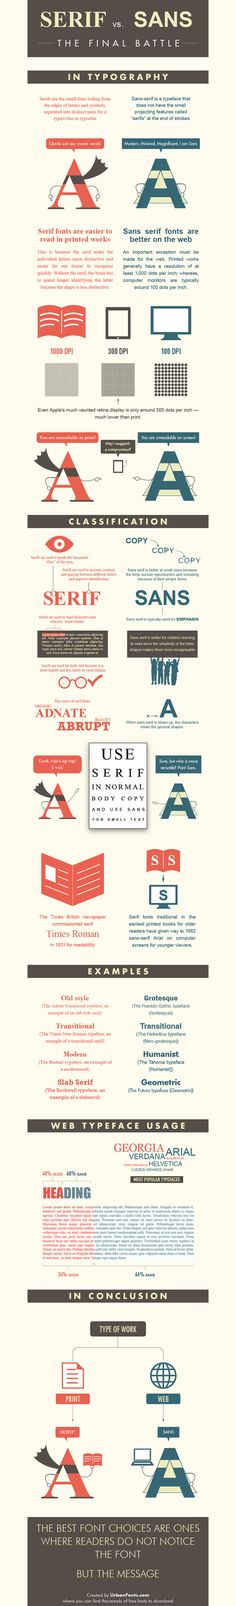 The Difference Between Serif And Sans-Serif Explained In One Infographic